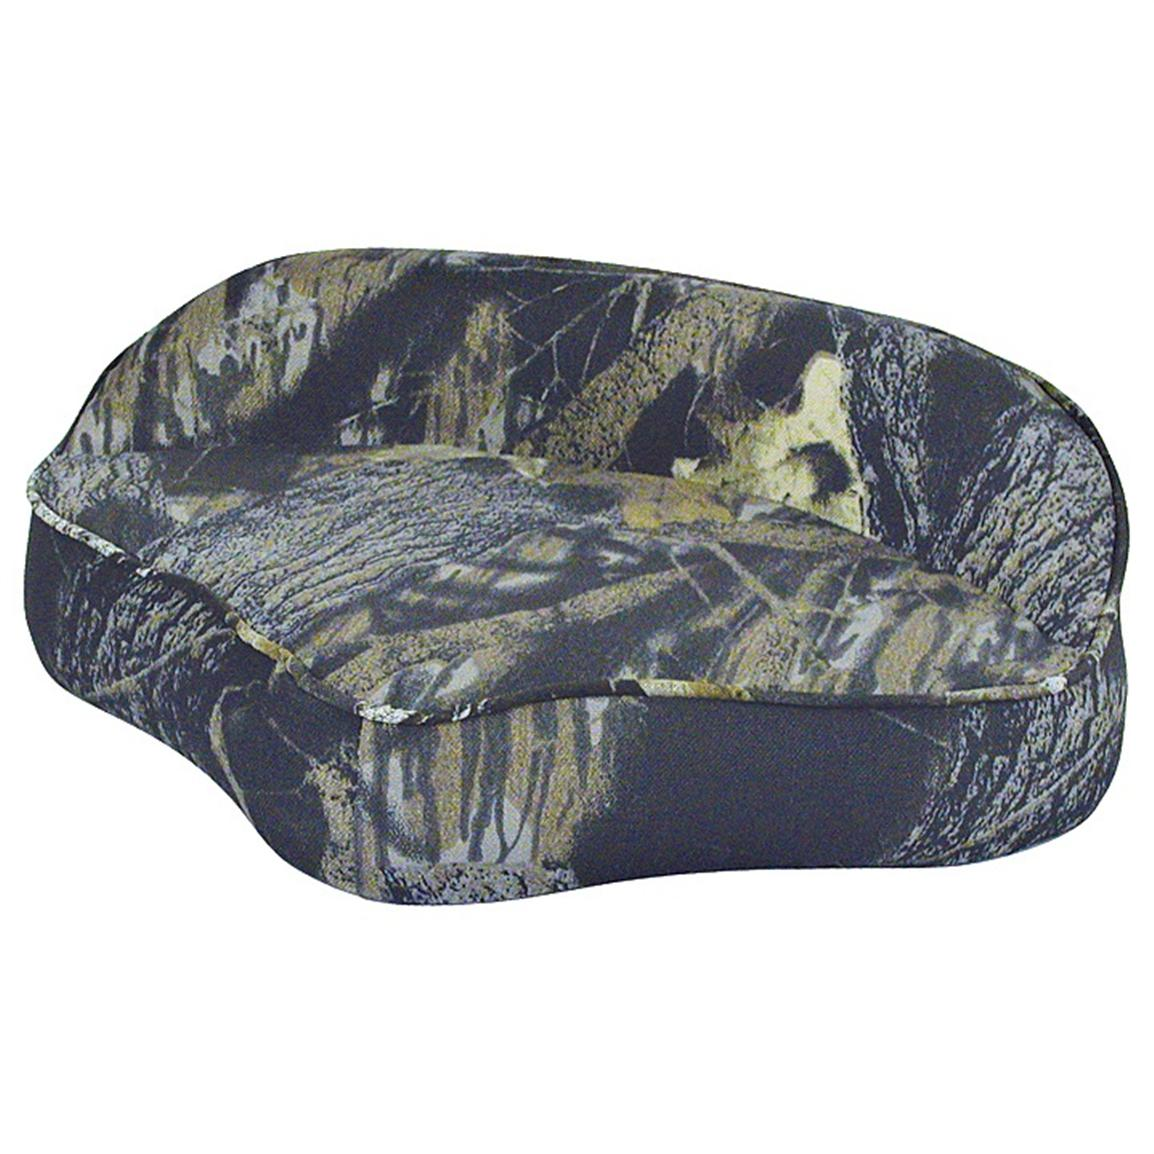 Wise® Casting Camo Boat Seat, Mossy Oak Break Up